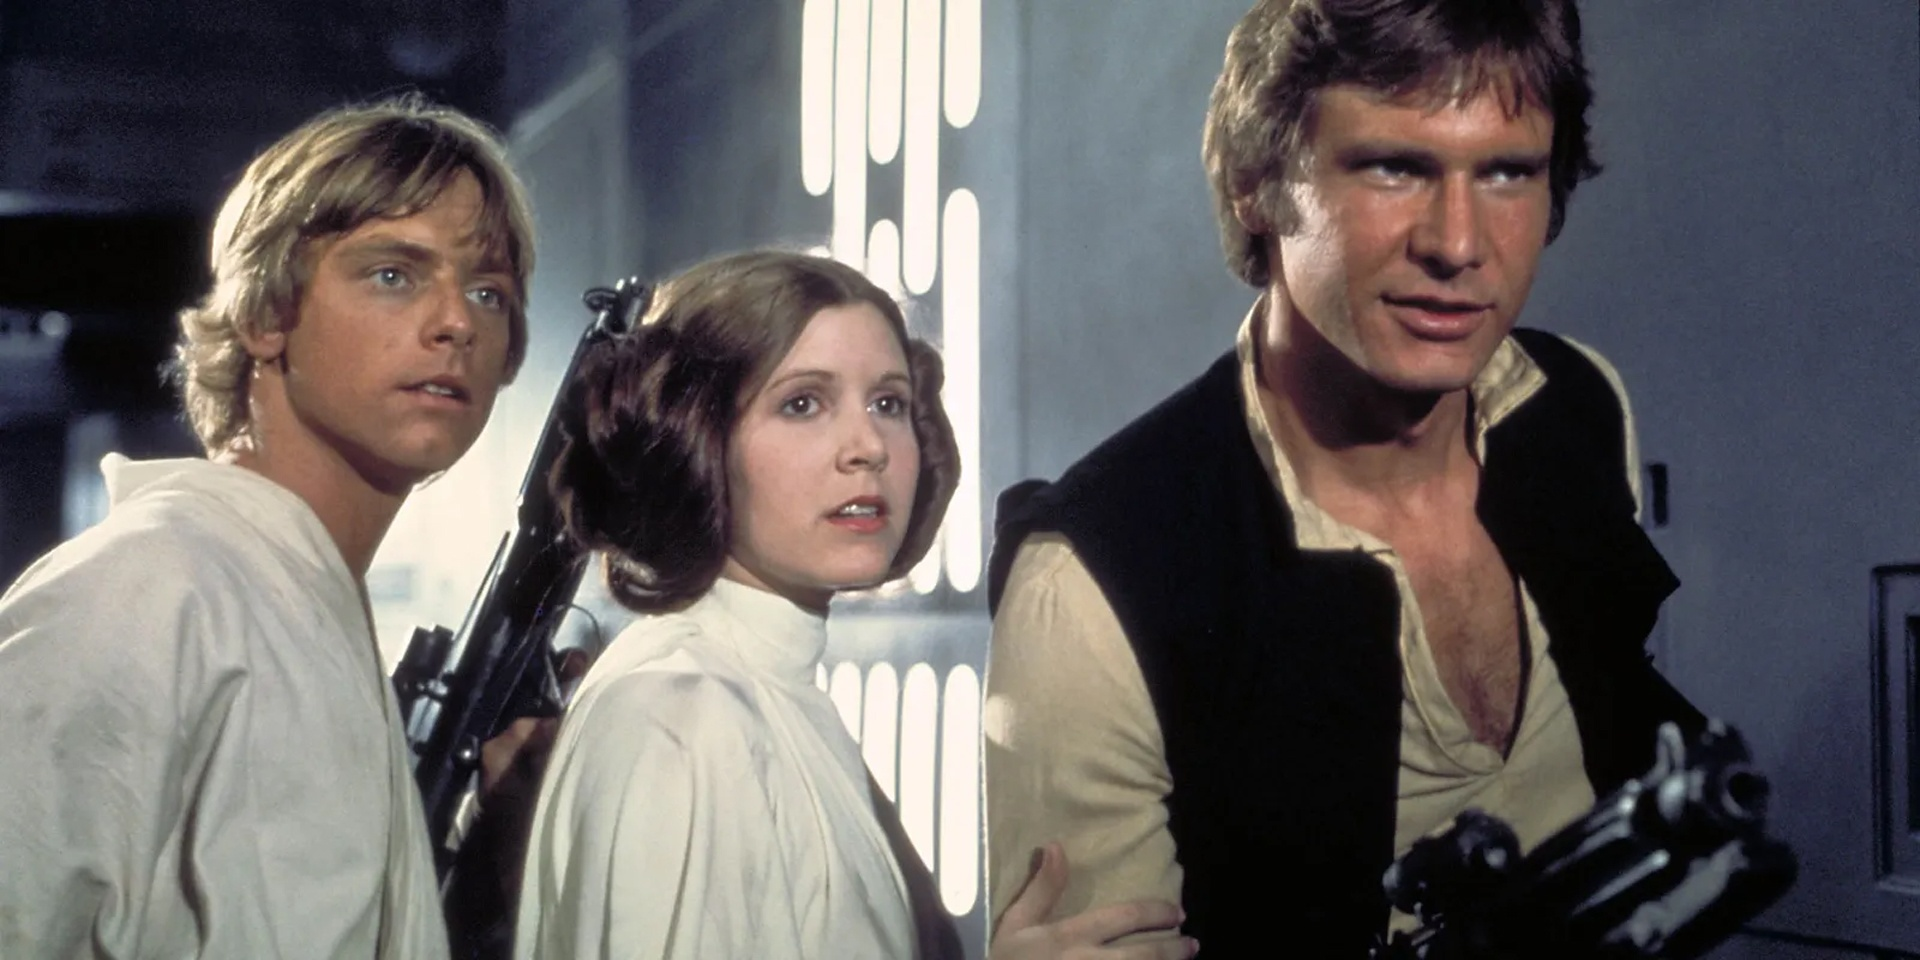 Star Wars: A New Hope in Concert is coming to Manila